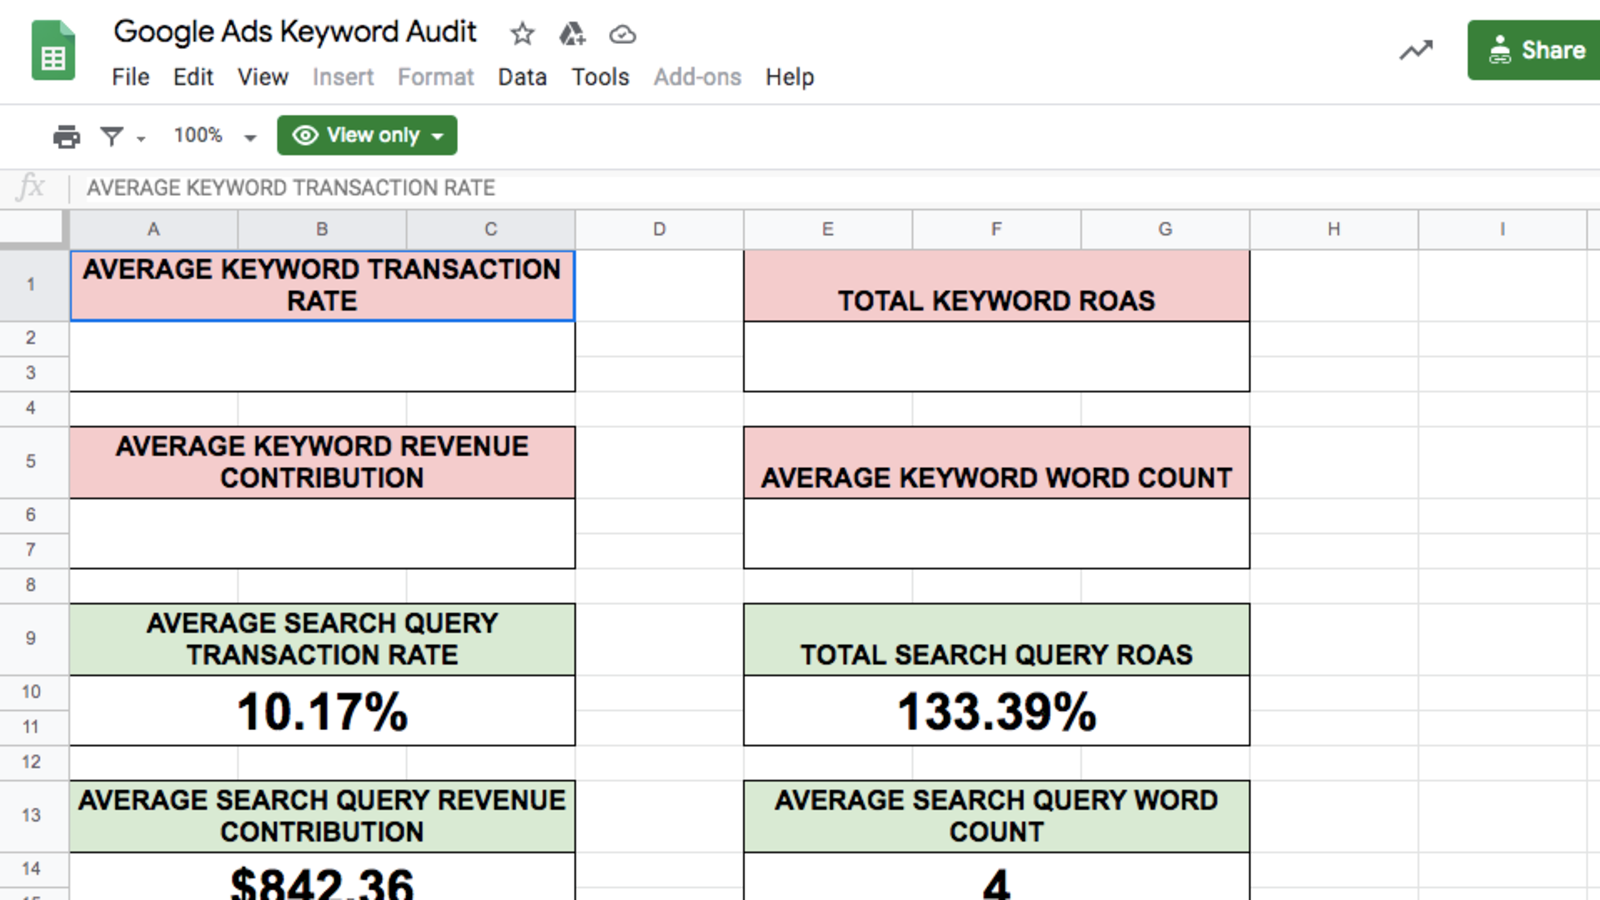 Google Ads Keyword Audit